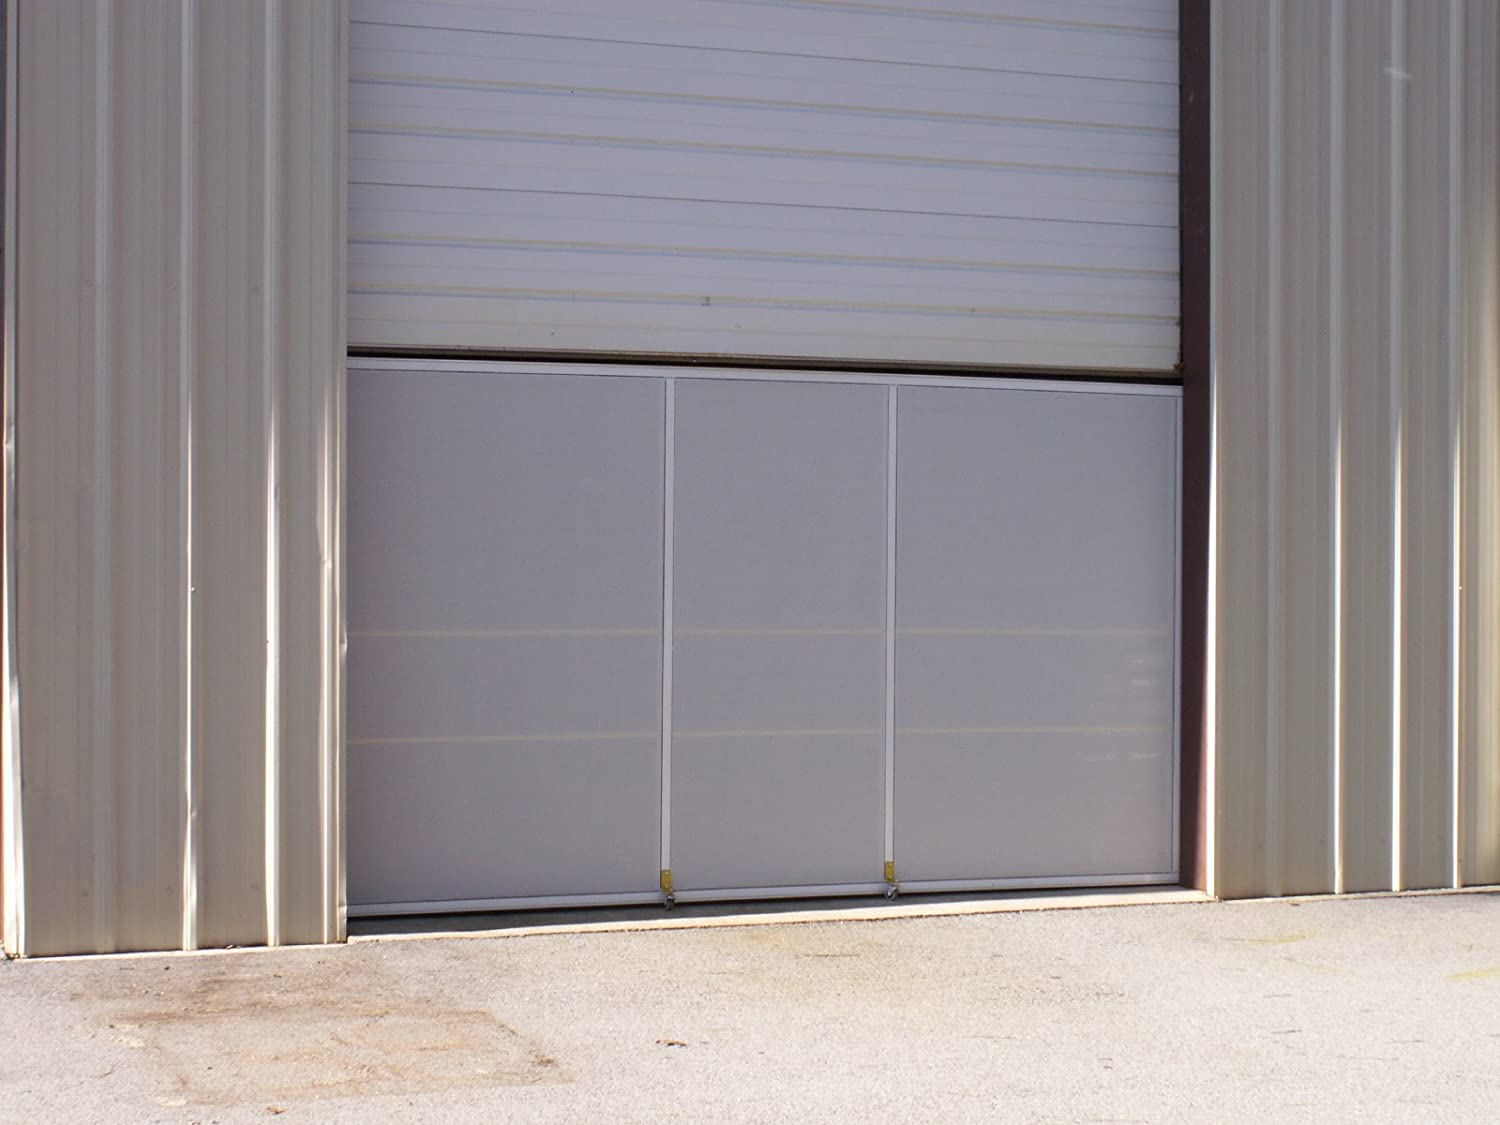 Amazon.com Warehouse Ventilating Security Bug Screen for Dock u0026 Bay Doors (White Frame with 17x20 PVC Coated White Superscreen Fabric) Home Improvement & Amazon.com: Warehouse Ventilating Security Bug Screen for Dock u0026 Bay ...